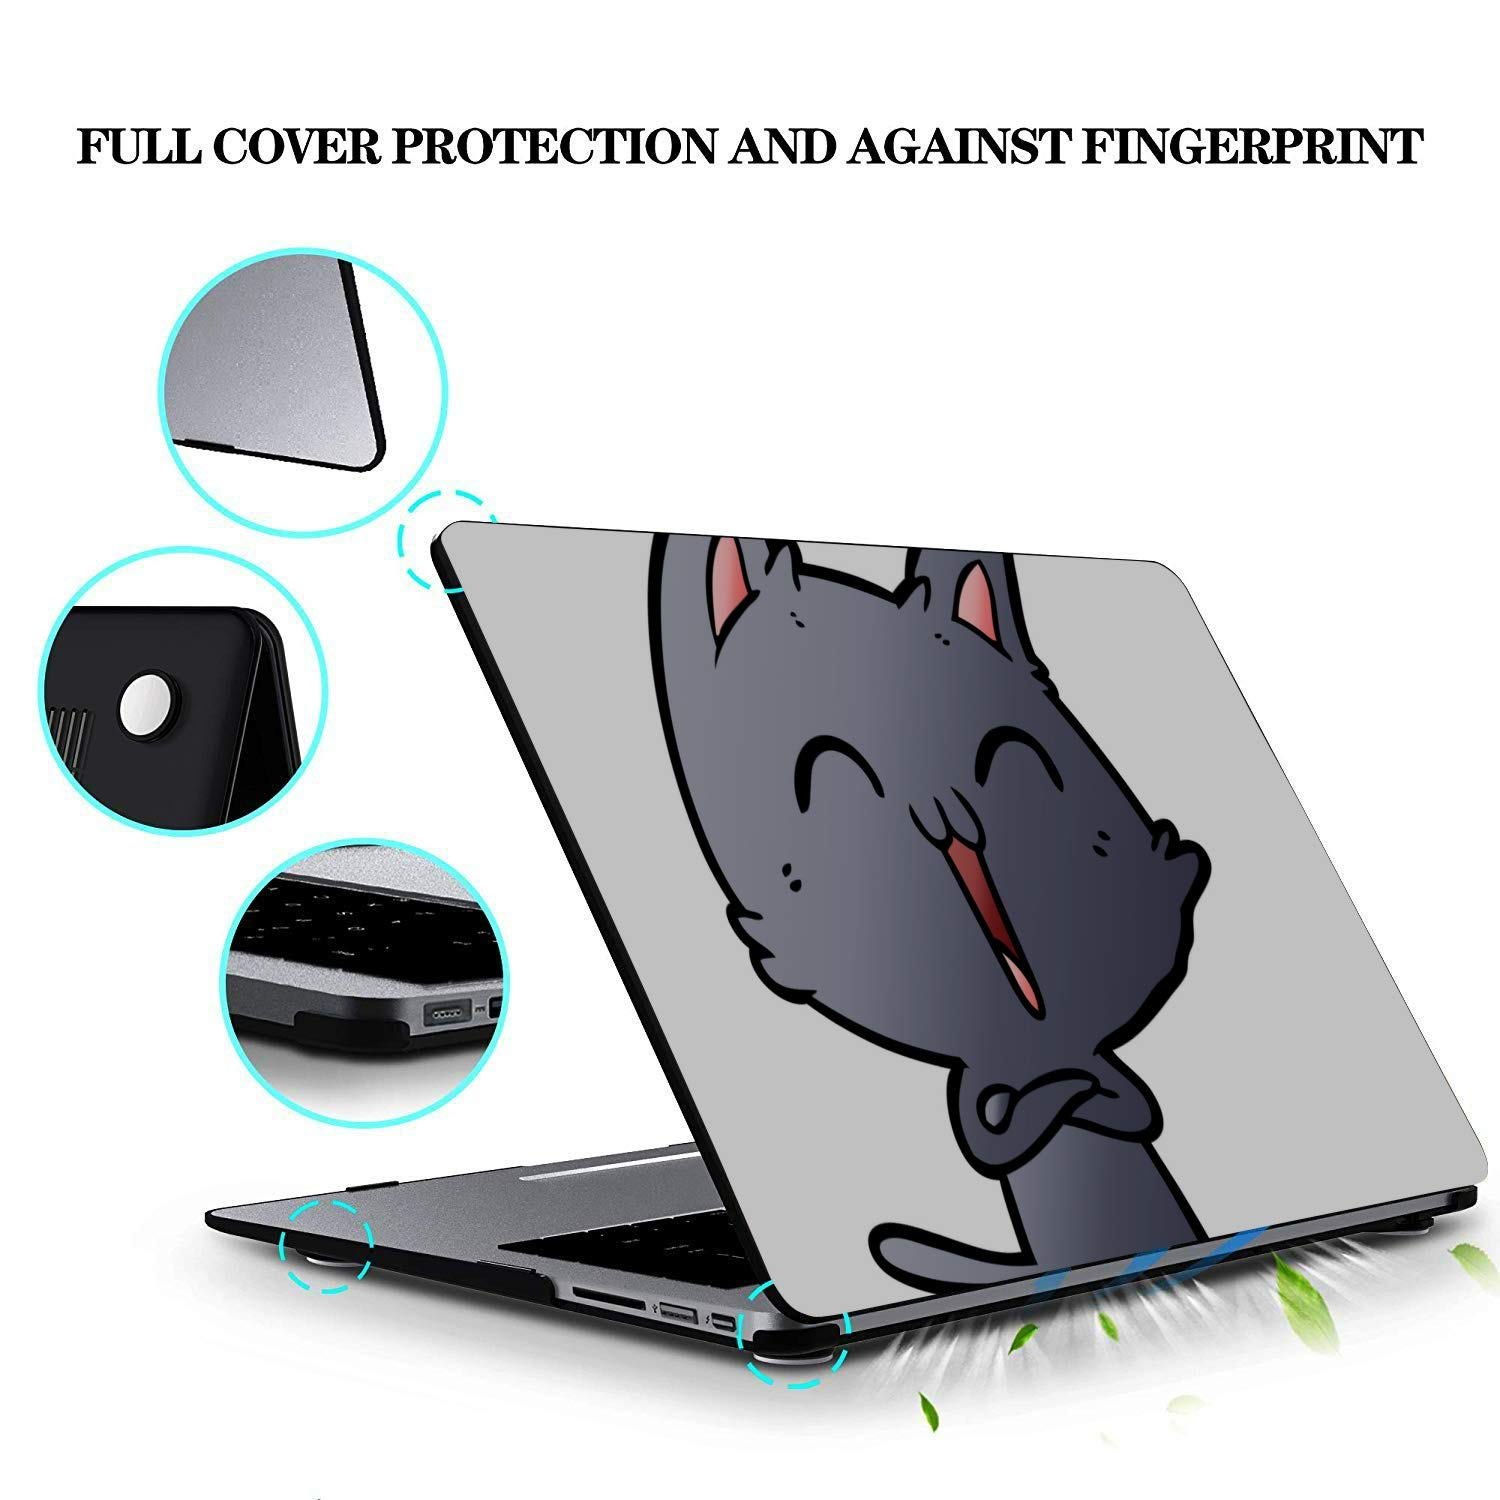 Case MacBook Pro 13 Cat Singing Music Singer Meowing Plastic Hard Shell Compatible Mac Air 11 Pro 13 15 MacBook Pro Laptop Protection for MacBook 2016-2019 Version